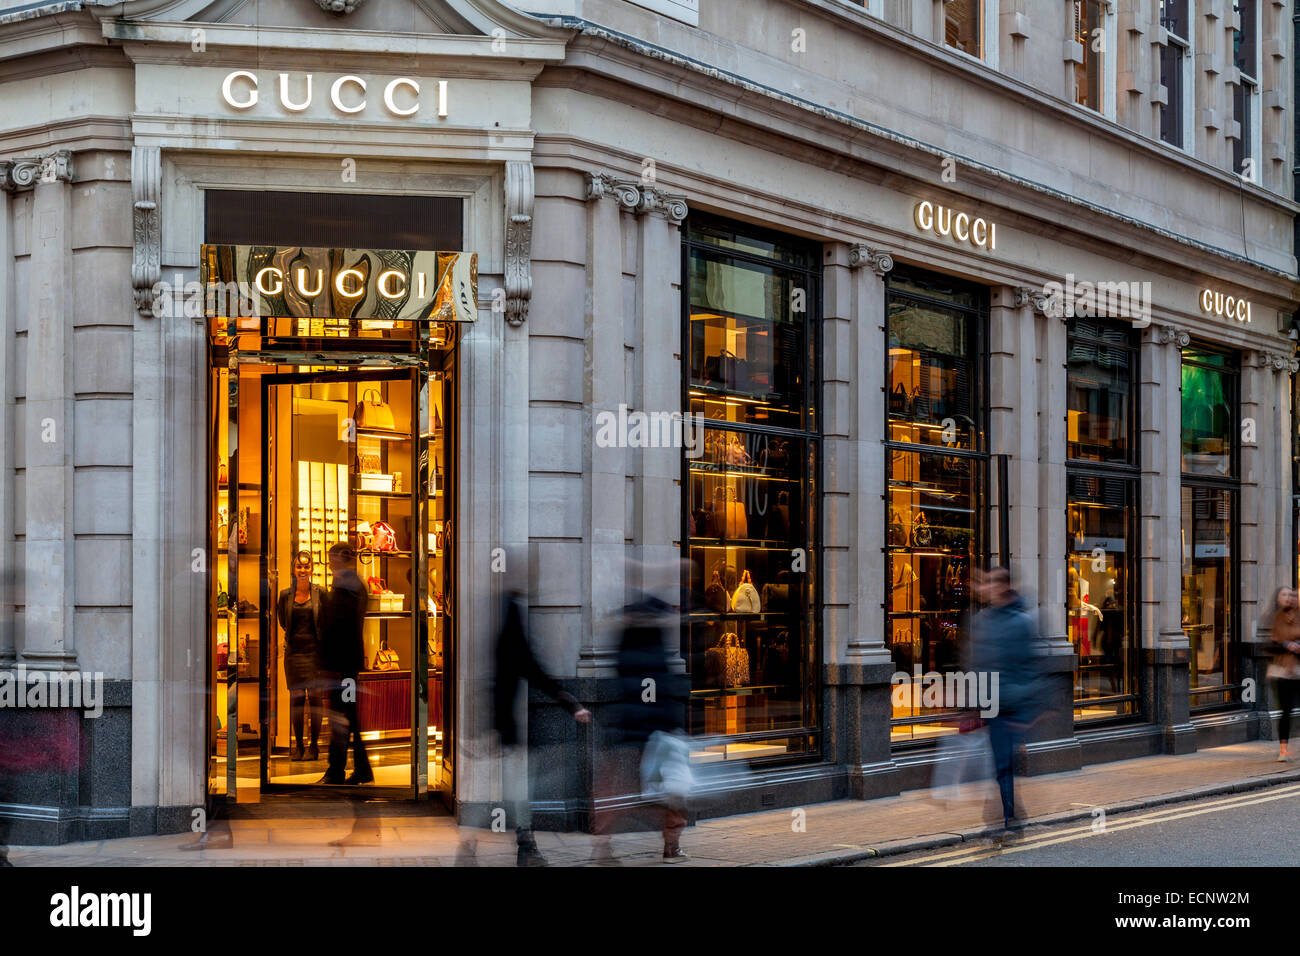 c2a21cd04a The Gucci Store In Old Bond Street, London, England Stock Photo ...